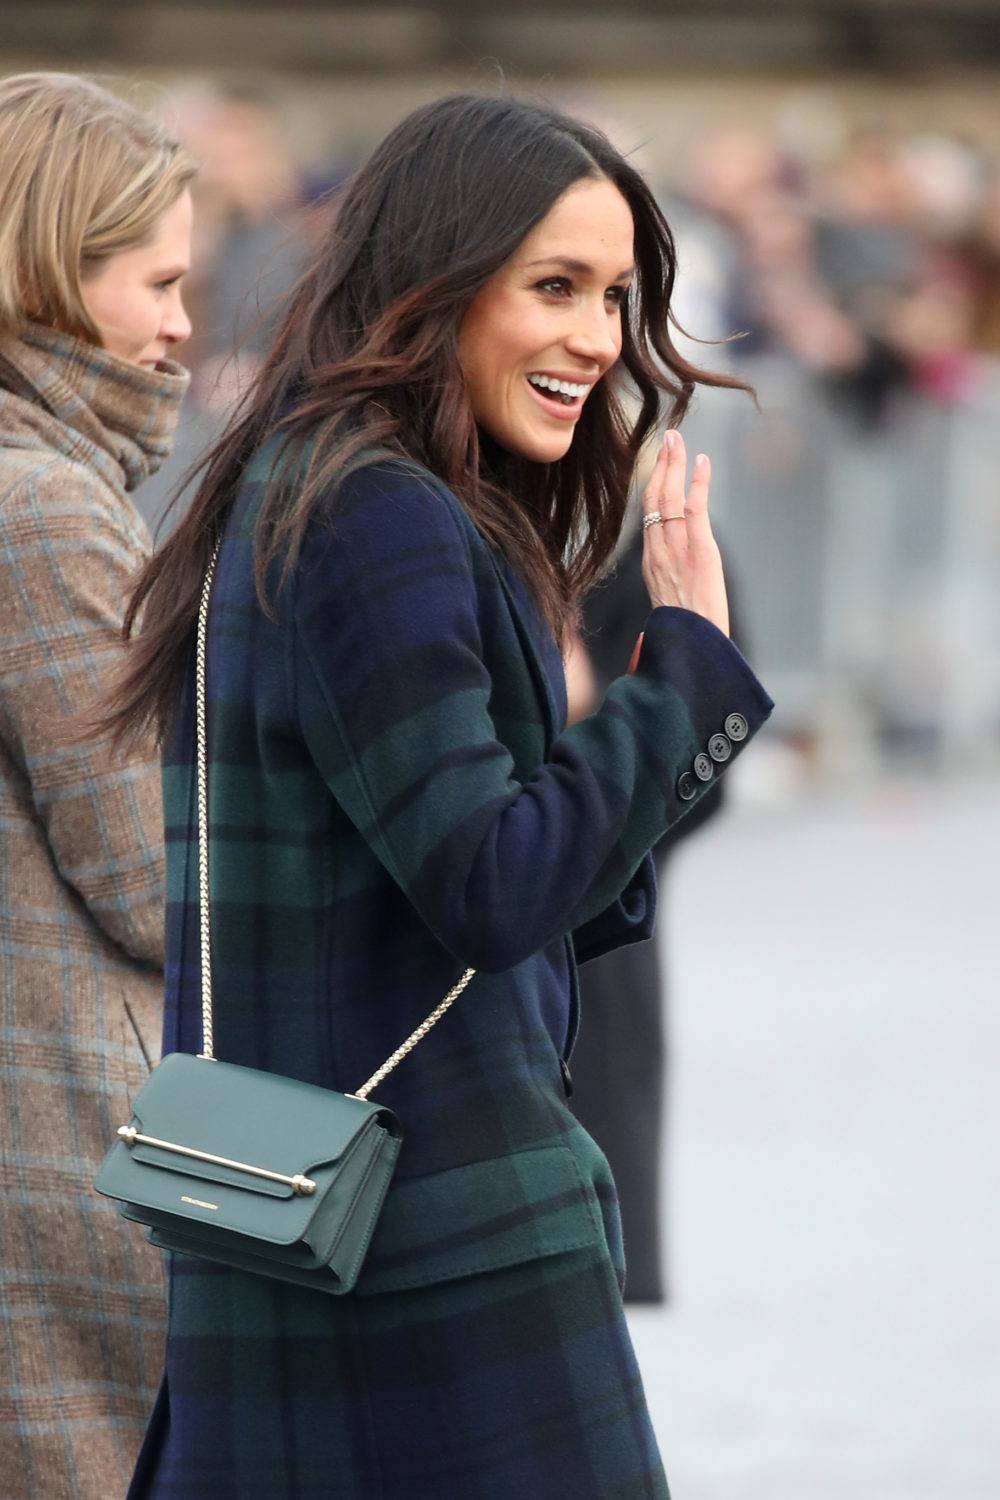 EDINBURGH, SCOTLAND - FEBRUARY 13: Meghan Markle arrives to Edinburgh Castle with Prince Harry on February 13, 2018 in Edinburgh, Scotland.